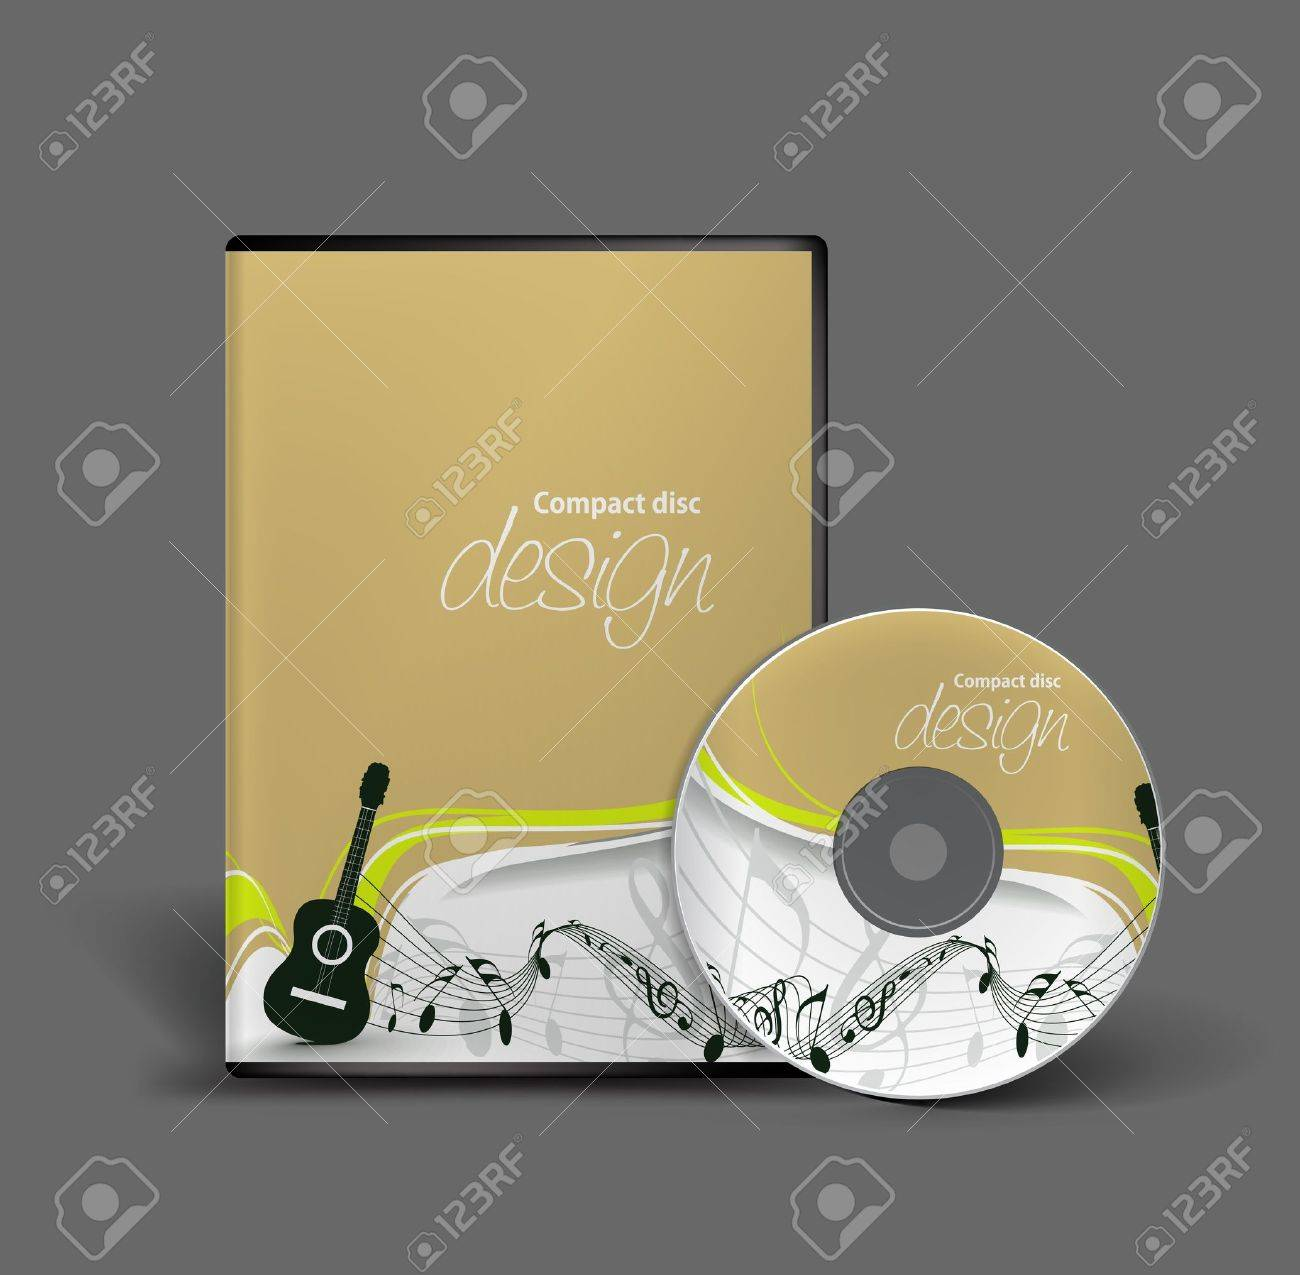 Cd box template download free vector art stock graphics amp images - Music Box Cd Cover Design Template With Copy Space